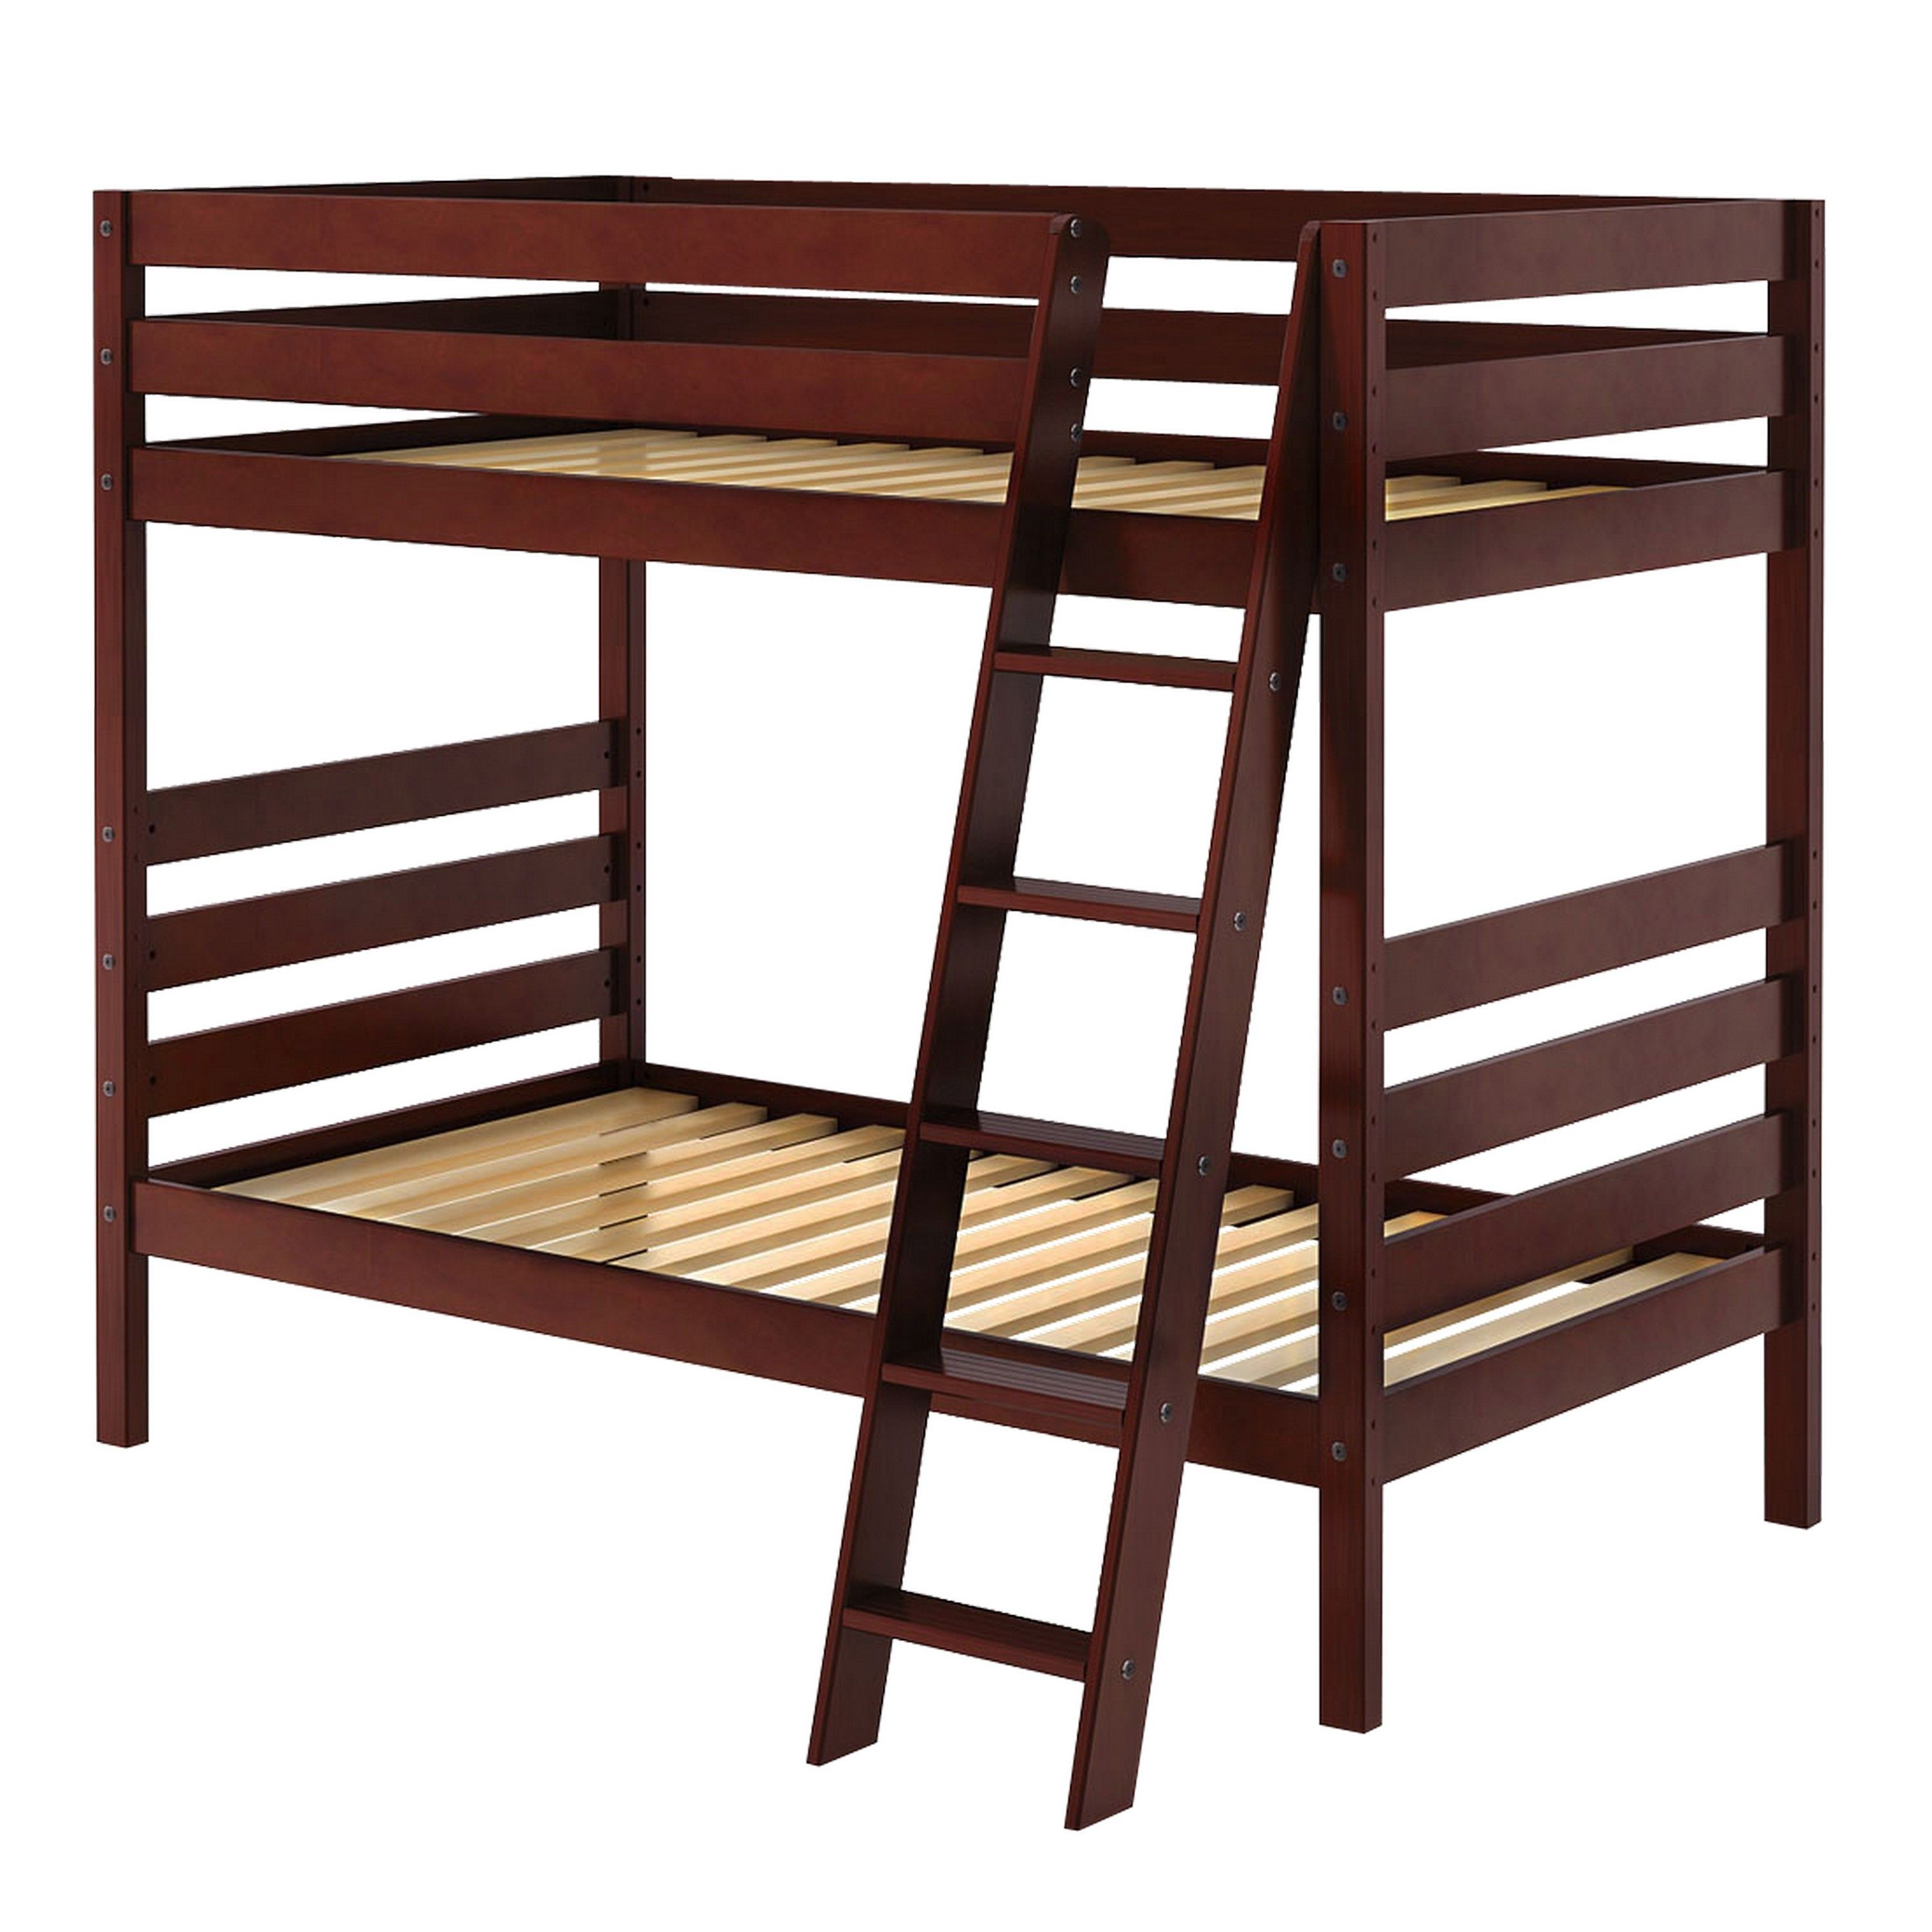 Jackpot double up bunk bed with angle ladder cherry wood finish